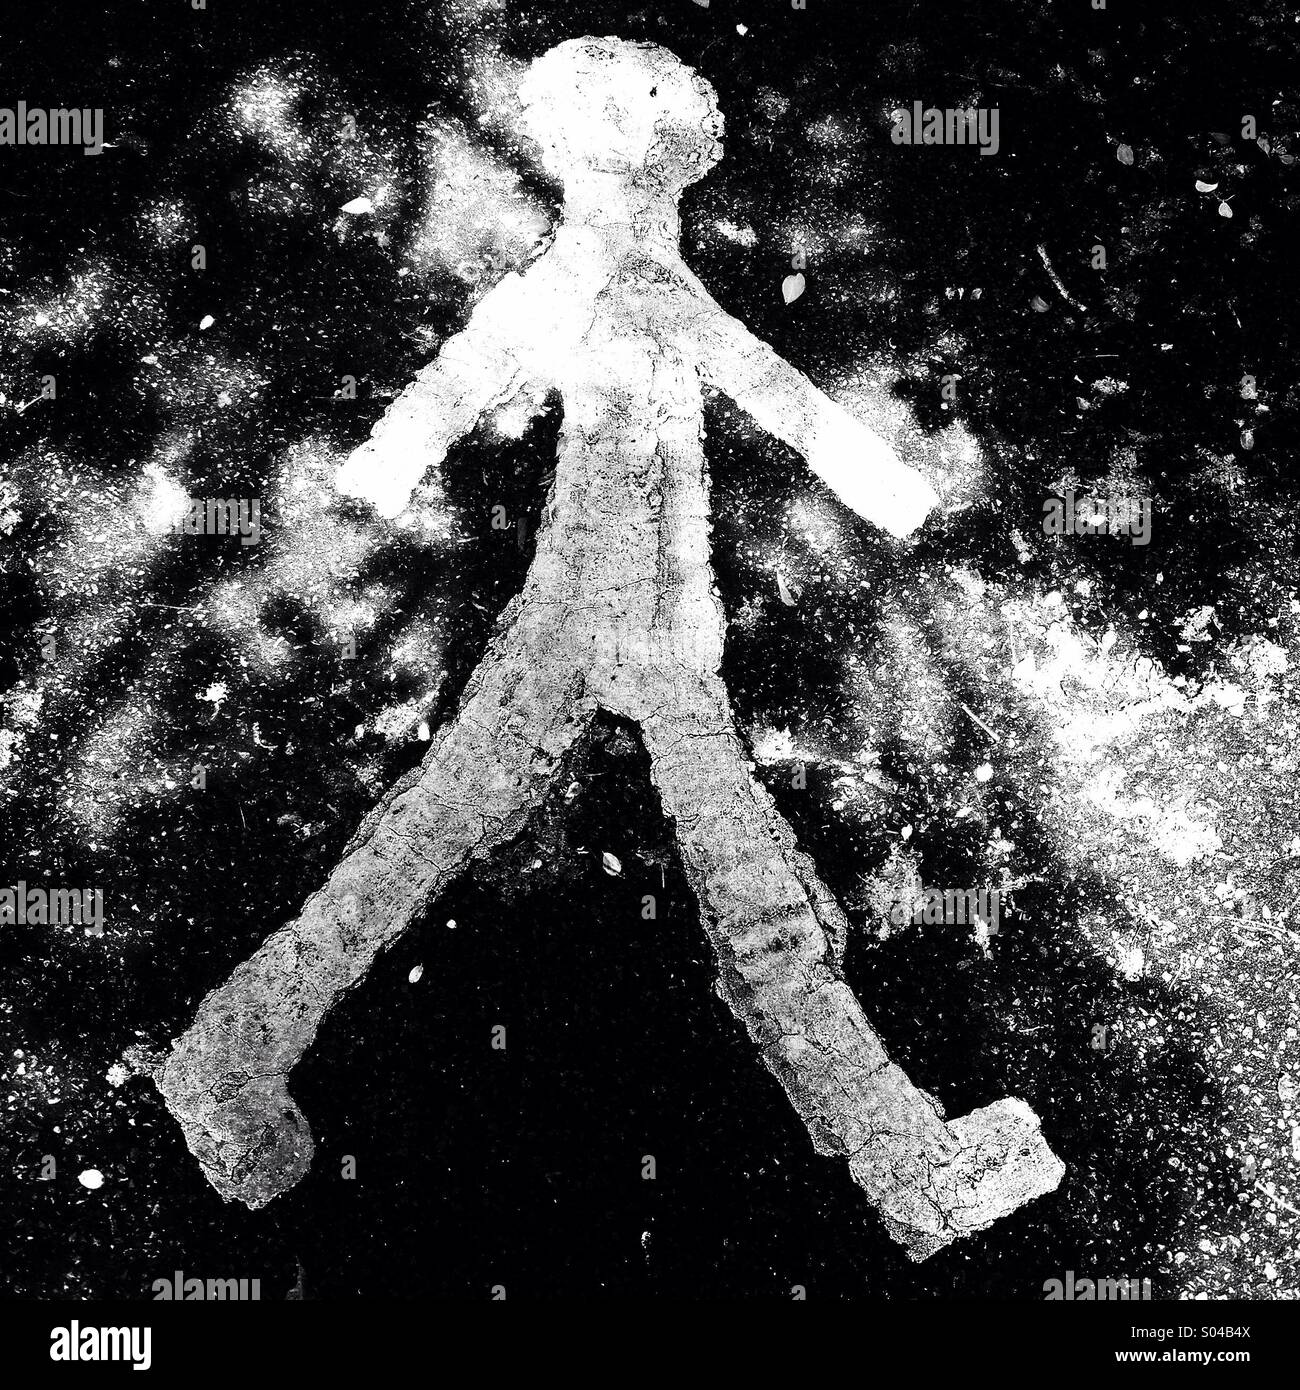 Symbol Of Person Walking In White Paint On Tarmac Under Tree Shade